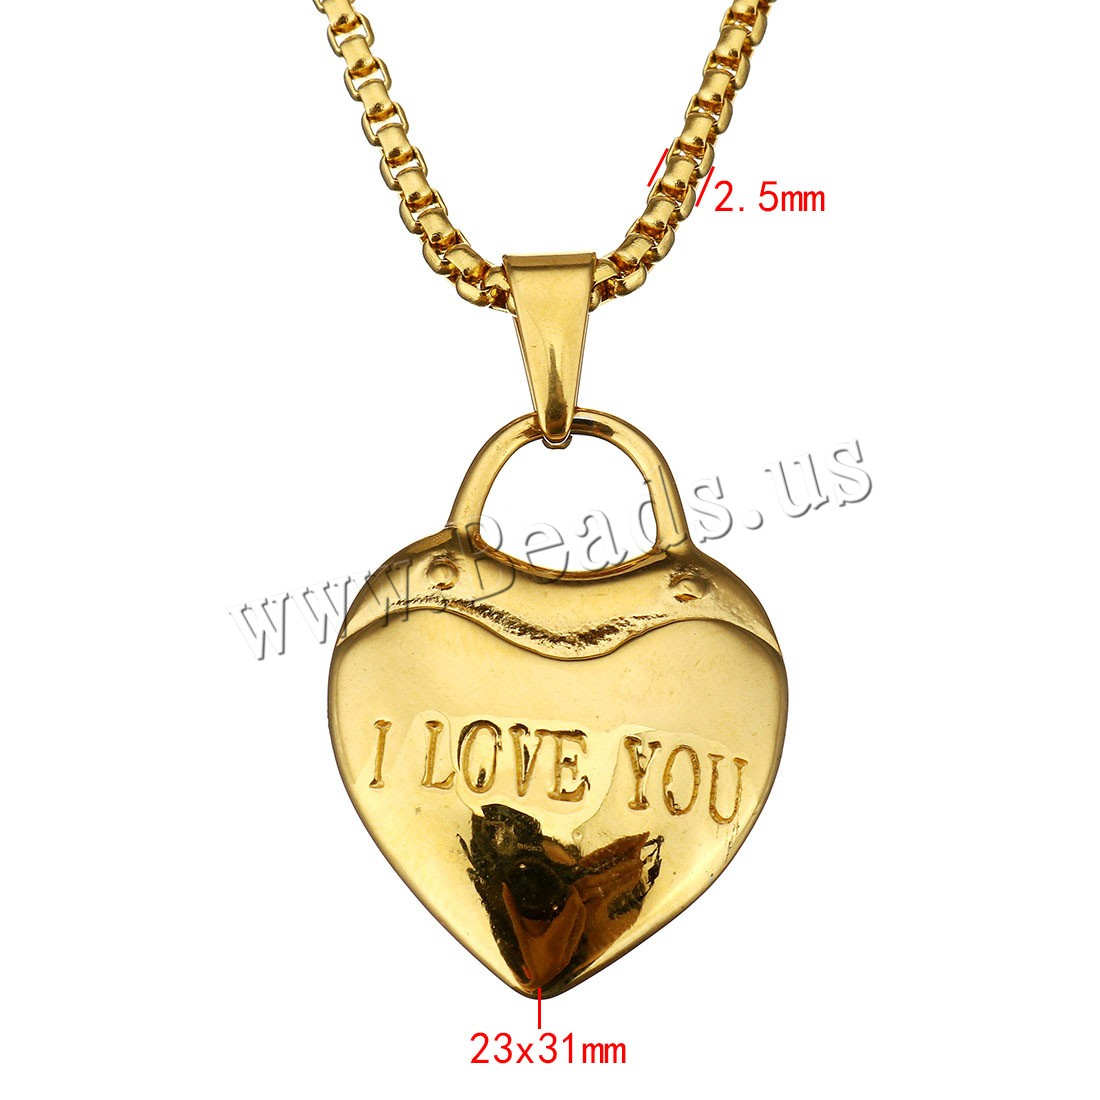 Buy Unisex Necklace Stainless Steel Lock word love gold color plated box chain 23x31mm 2.5mm Sold Per Approx 18 Inch Strand